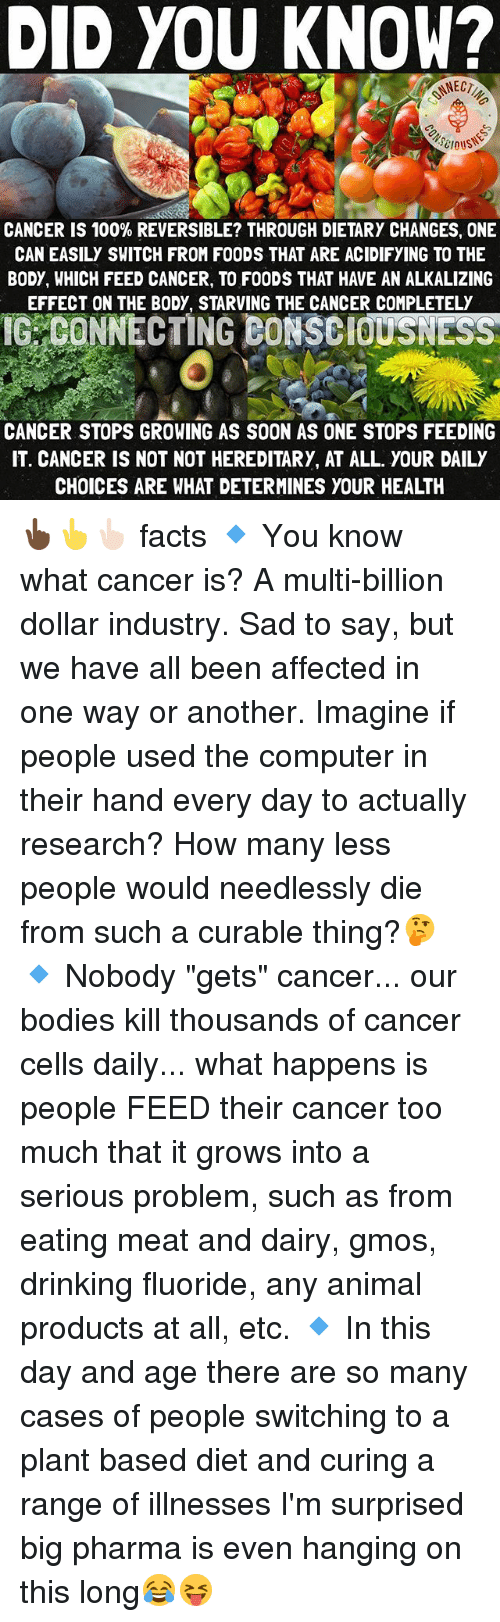 """eating meat: DID YOU KNOW?  CANCER IS 100% REVERSIBLE? THROUGH DIETARY CHANGES, ONE  CAN EASILY SWITCH FROM FOODS THAT ARE ACIDIFYING TO THE  BODY, WHICH FEED CANCER, TO F00DS THAT HAVE AN ALKALIZING  EFFECT ON THE BODY, STARVING THE CANCER COMPLETELY  IGRCONNECTING BONSEid.sNEsse  CANCER STOPS GROWING AS SOON AS ONE STOPS FEEDING  IT. CANCER IS NOT NOT HEREDITARY, AT ALL. YOUR DAILY  CHOICES ARE WHAT DETERMINES YOUR HEALTH 👆🏿👆👆🏻 facts 🔹 You know what cancer is? A multi-billion dollar industry. Sad to say, but we have all been affected in one way or another. Imagine if people used the computer in their hand every day to actually research? How many less people would needlessly die from such a curable thing?🤔 🔹 Nobody """"gets"""" cancer... our bodies kill thousands of cancer cells daily... what happens is people FEED their cancer too much that it grows into a serious problem, such as from eating meat and dairy, gmos, drinking fluoride, any animal products at all, etc. 🔹 In this day and age there are so many cases of people switching to a plant based diet and curing a range of illnesses I'm surprised big pharma is even hanging on this long😂😝"""